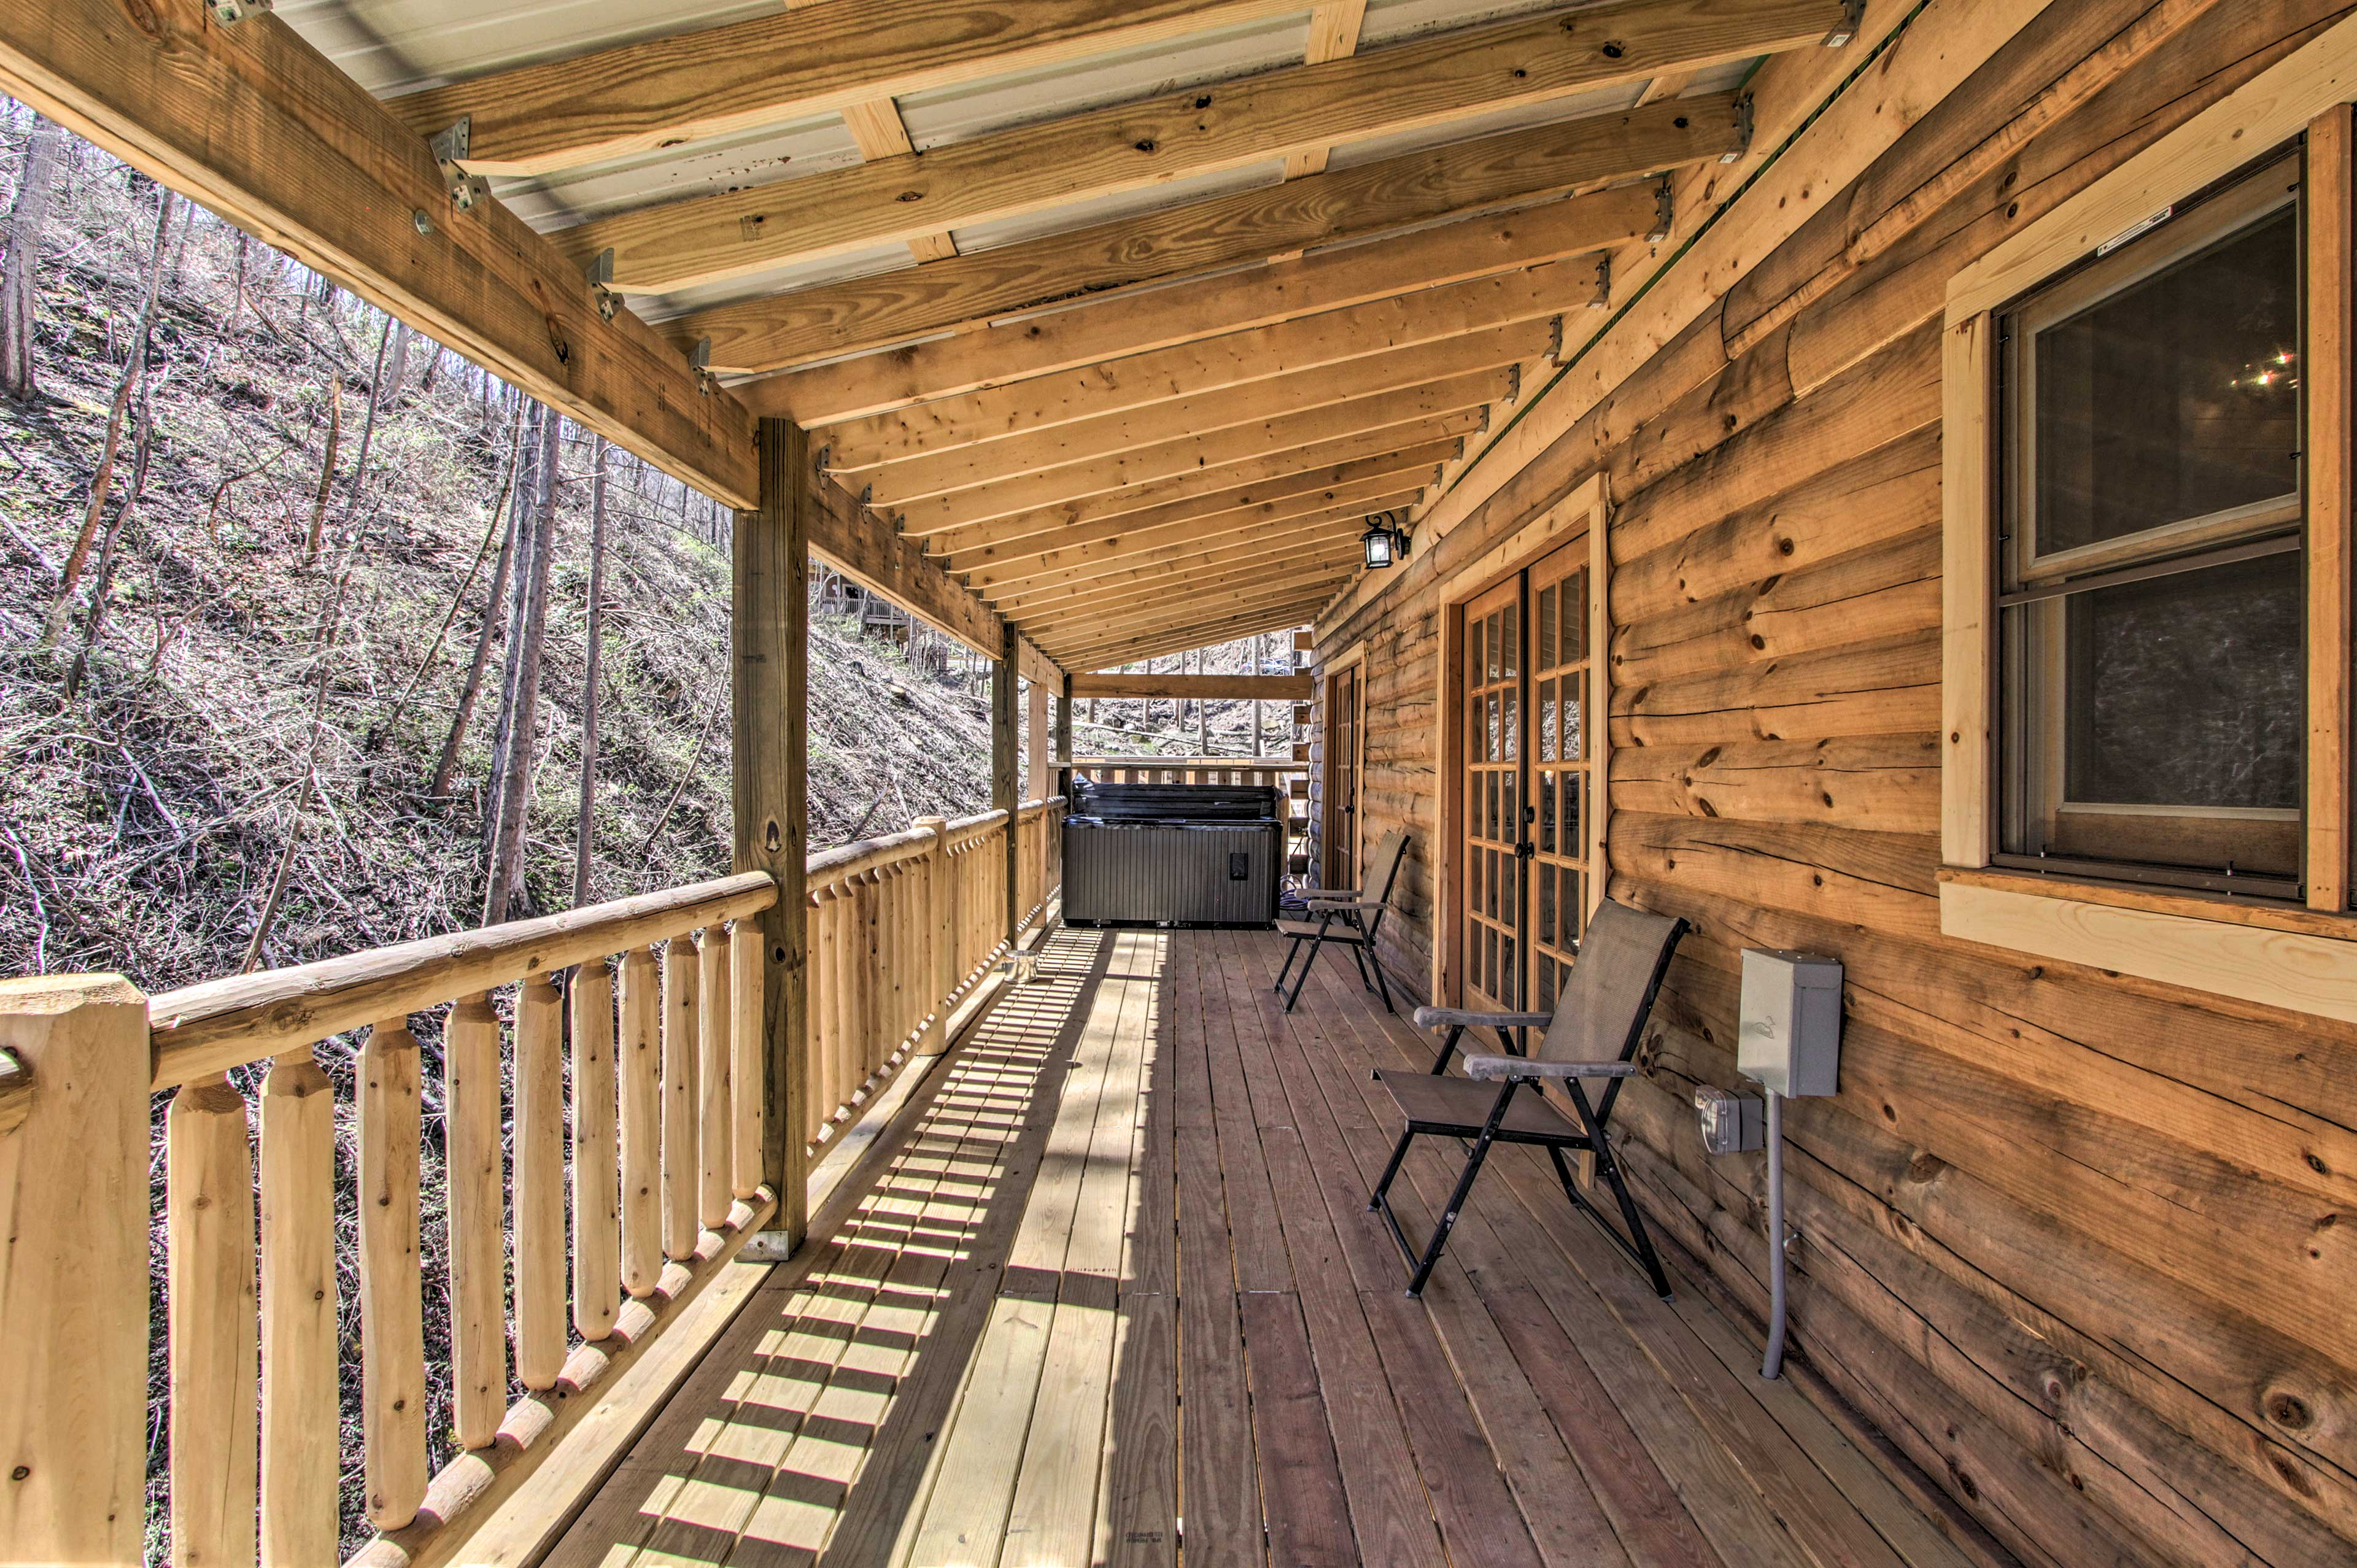 Don't forget to take a breath of the mountain air on the deck.